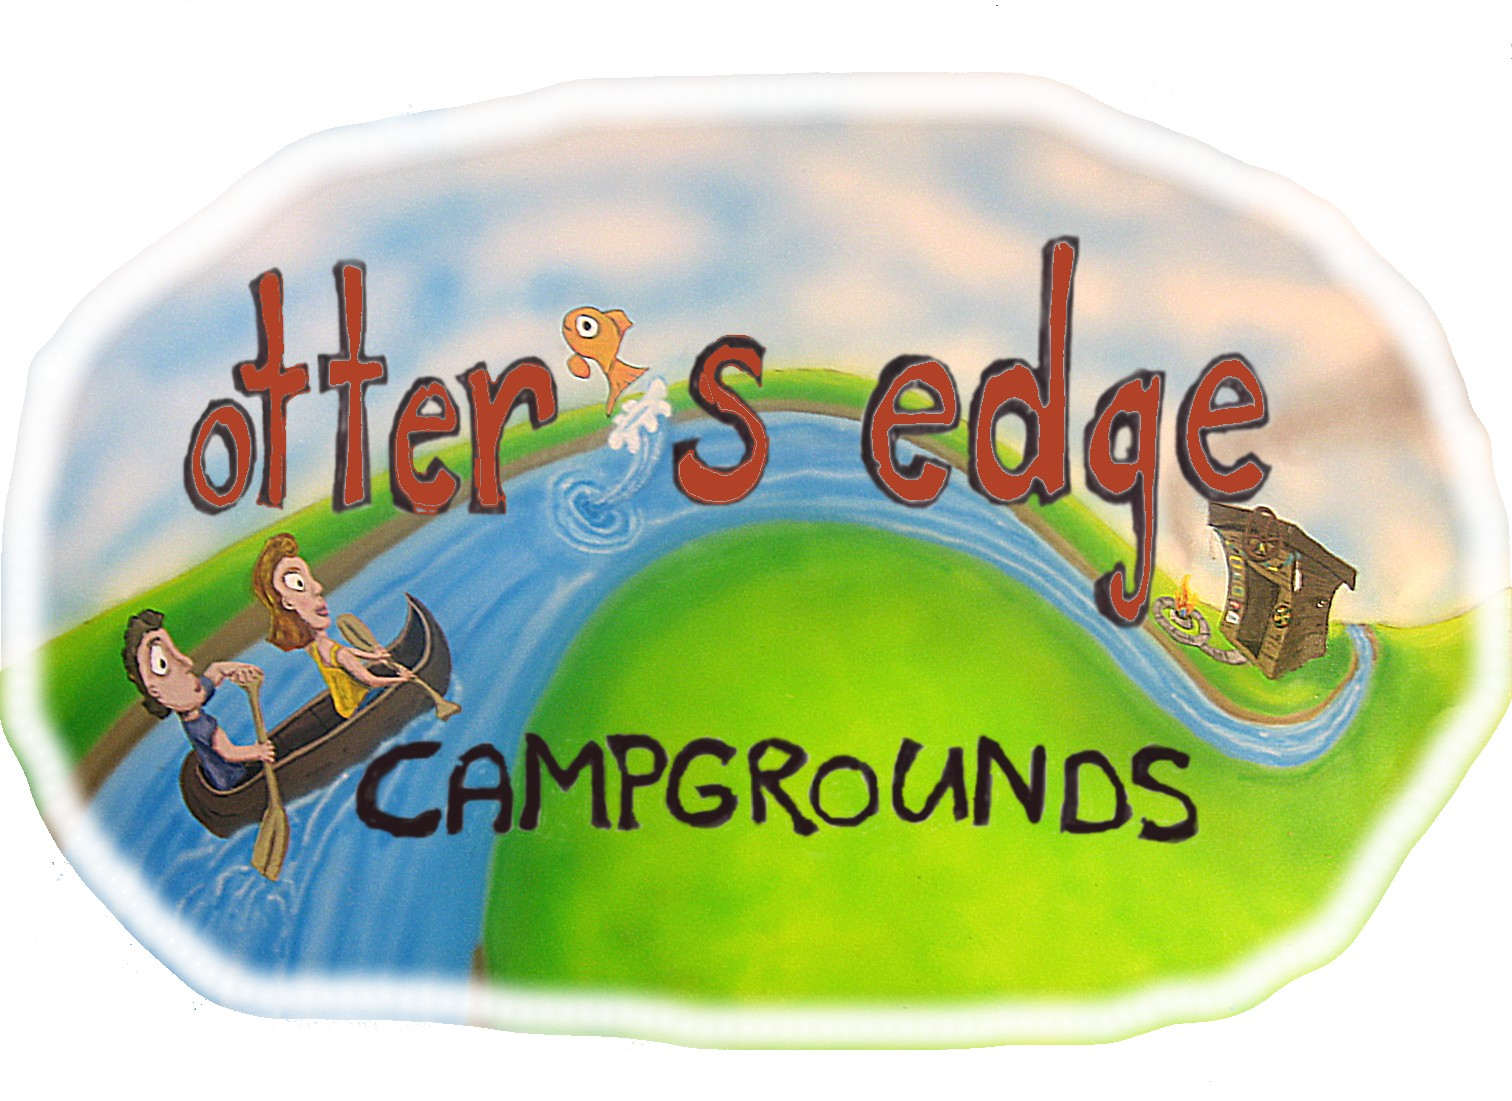 otter's edge campgrounds logo